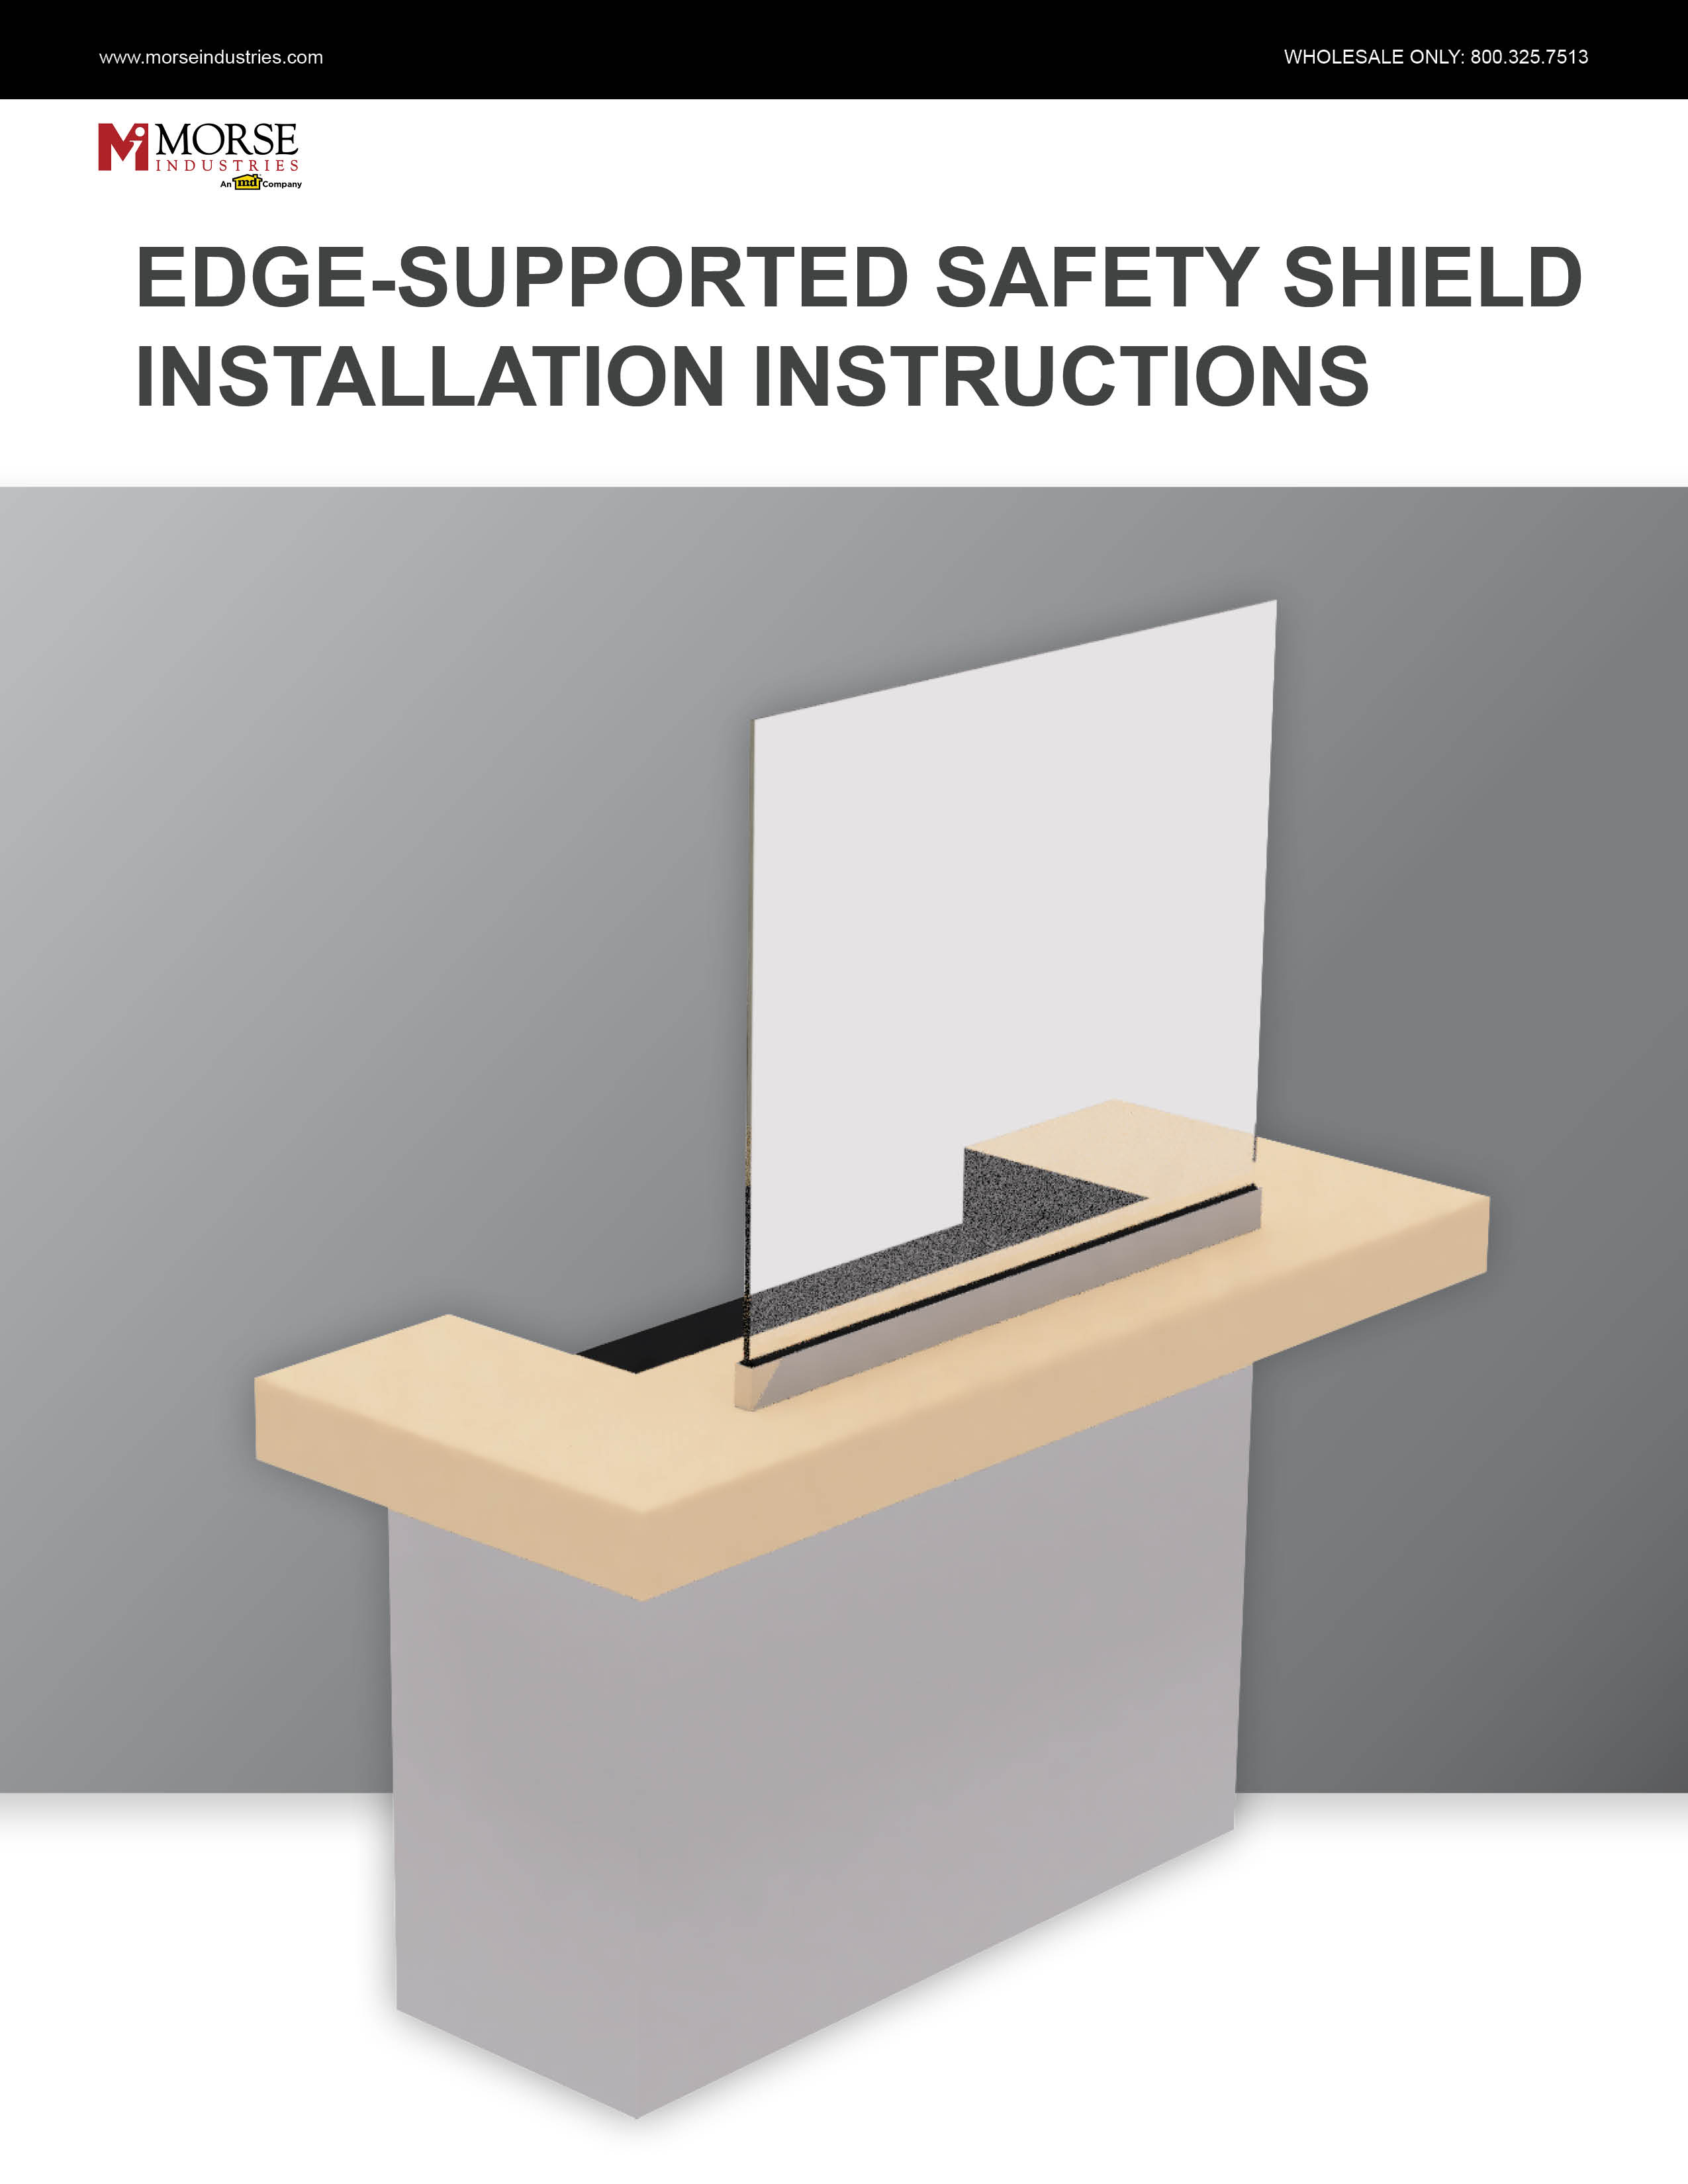 Edge-Supported Installation Instructions